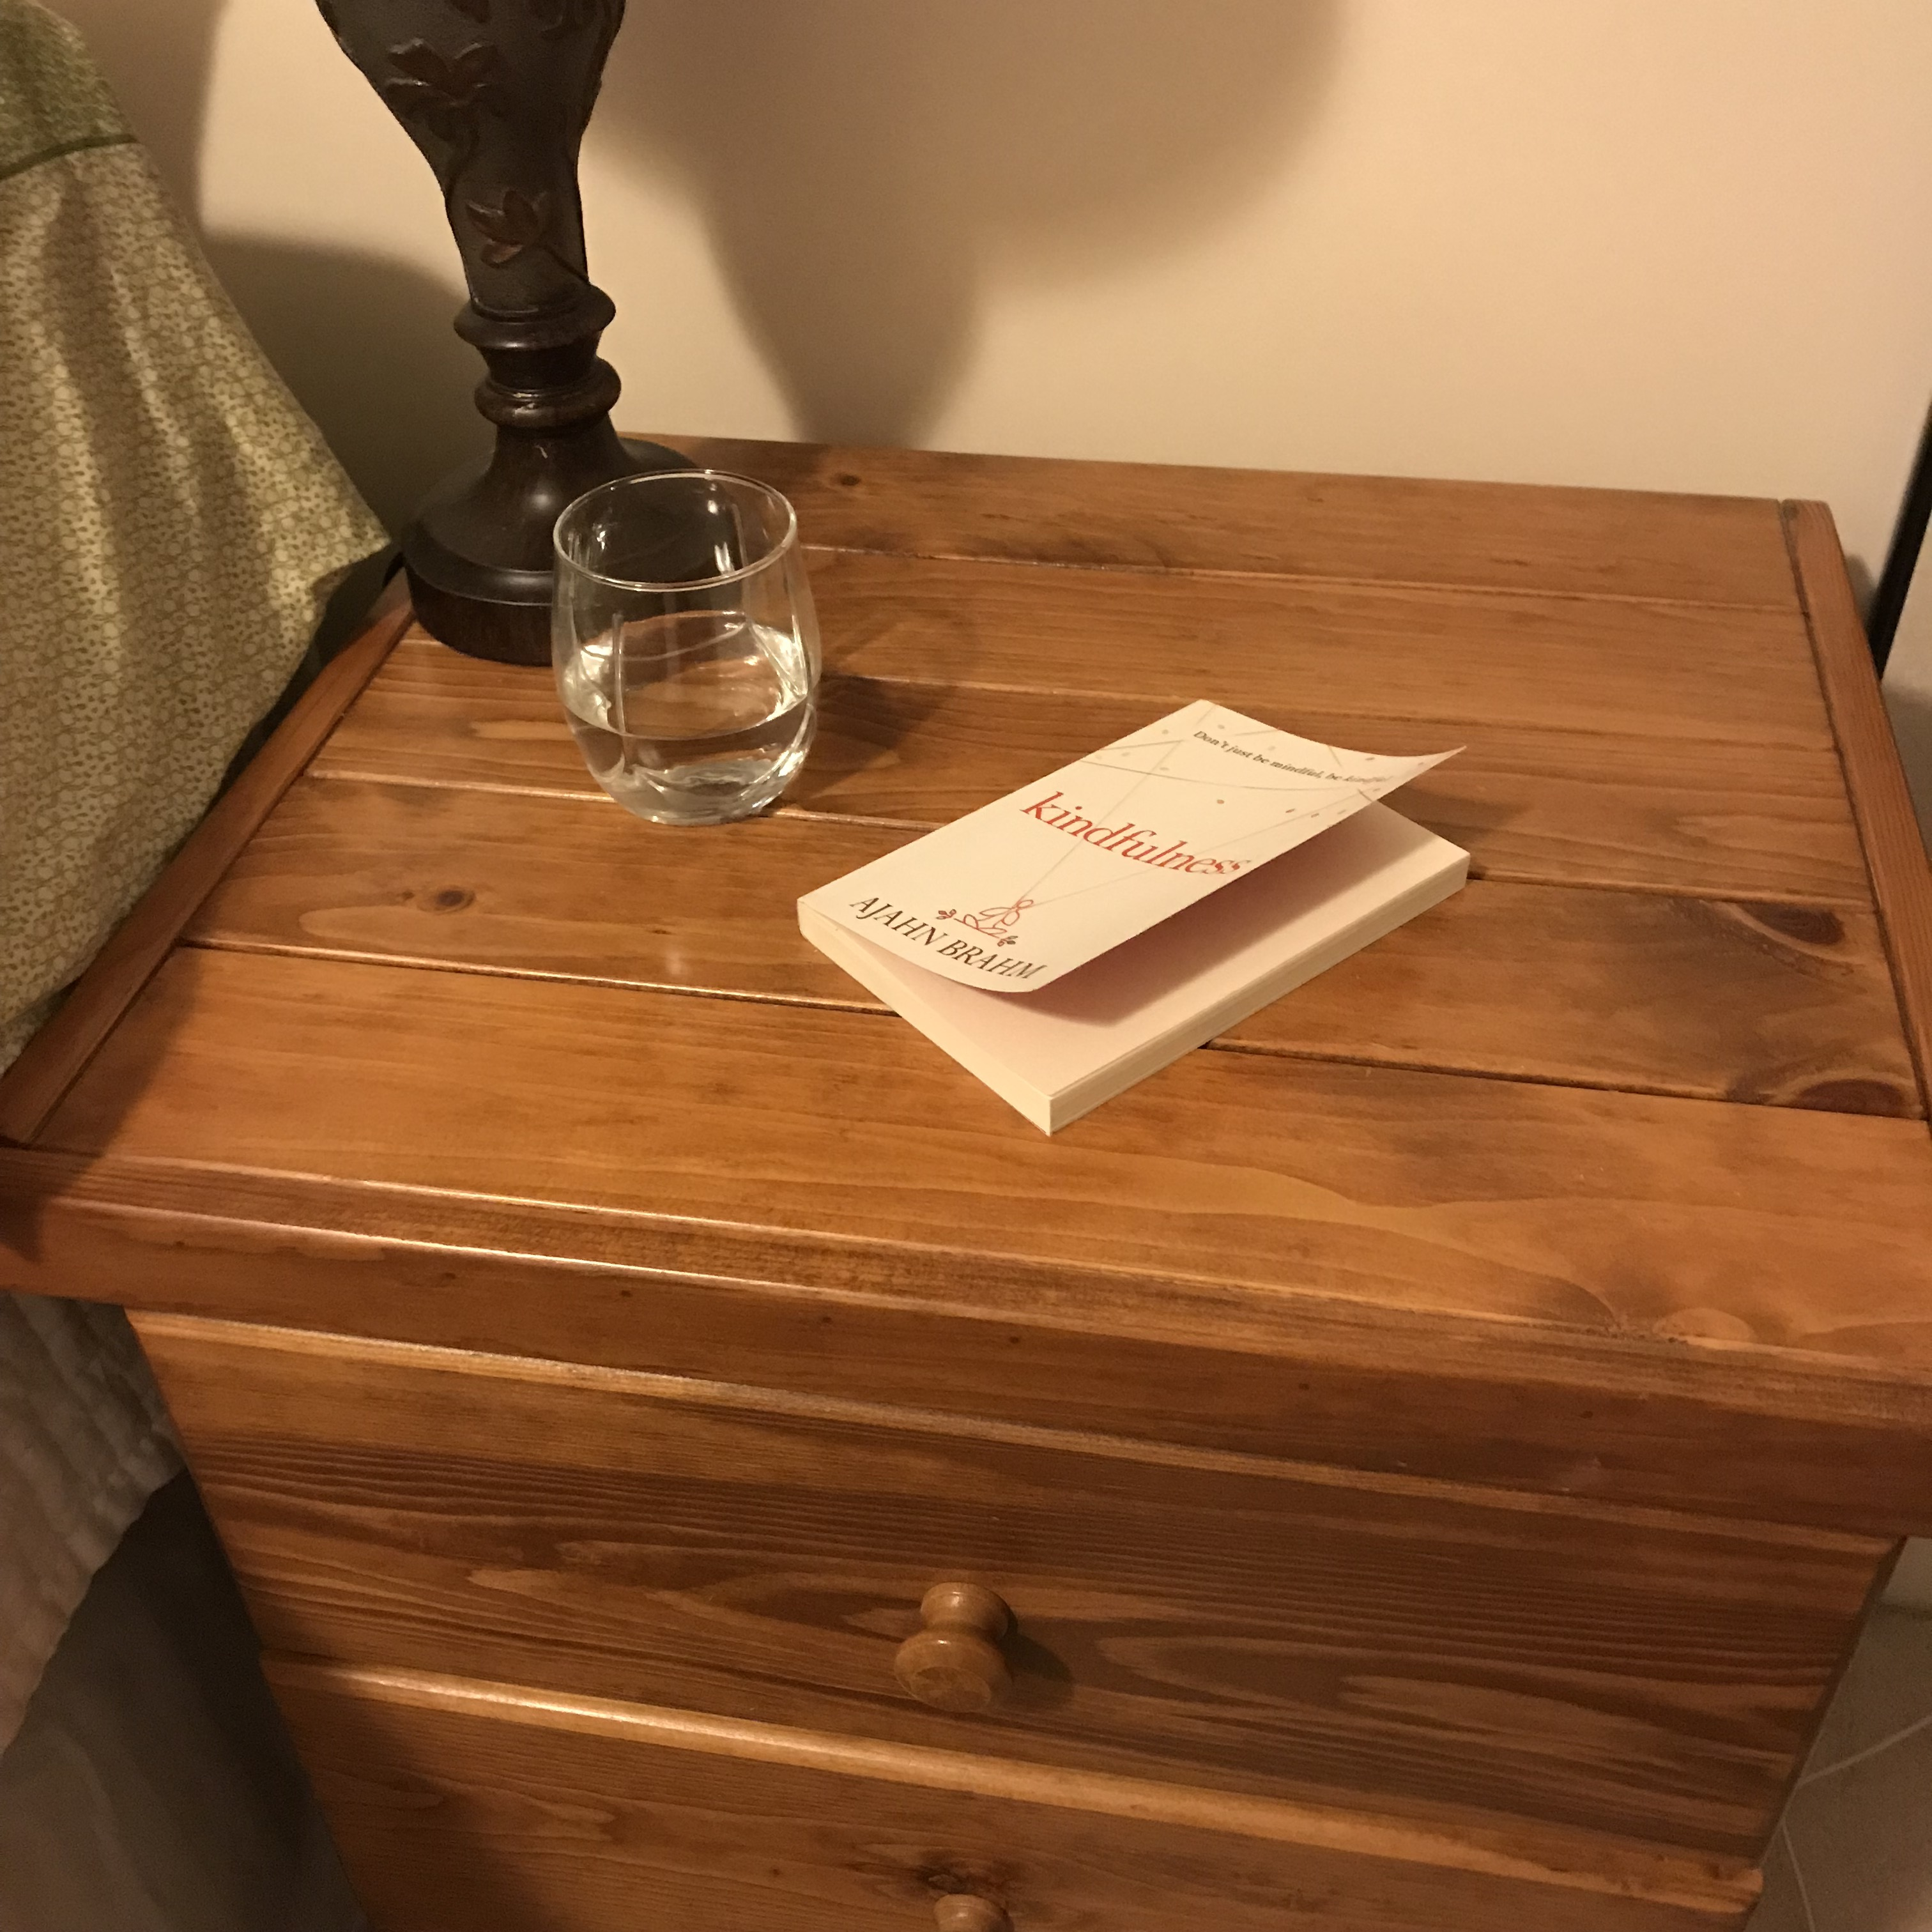 nightstand with glass of water, book, lamp